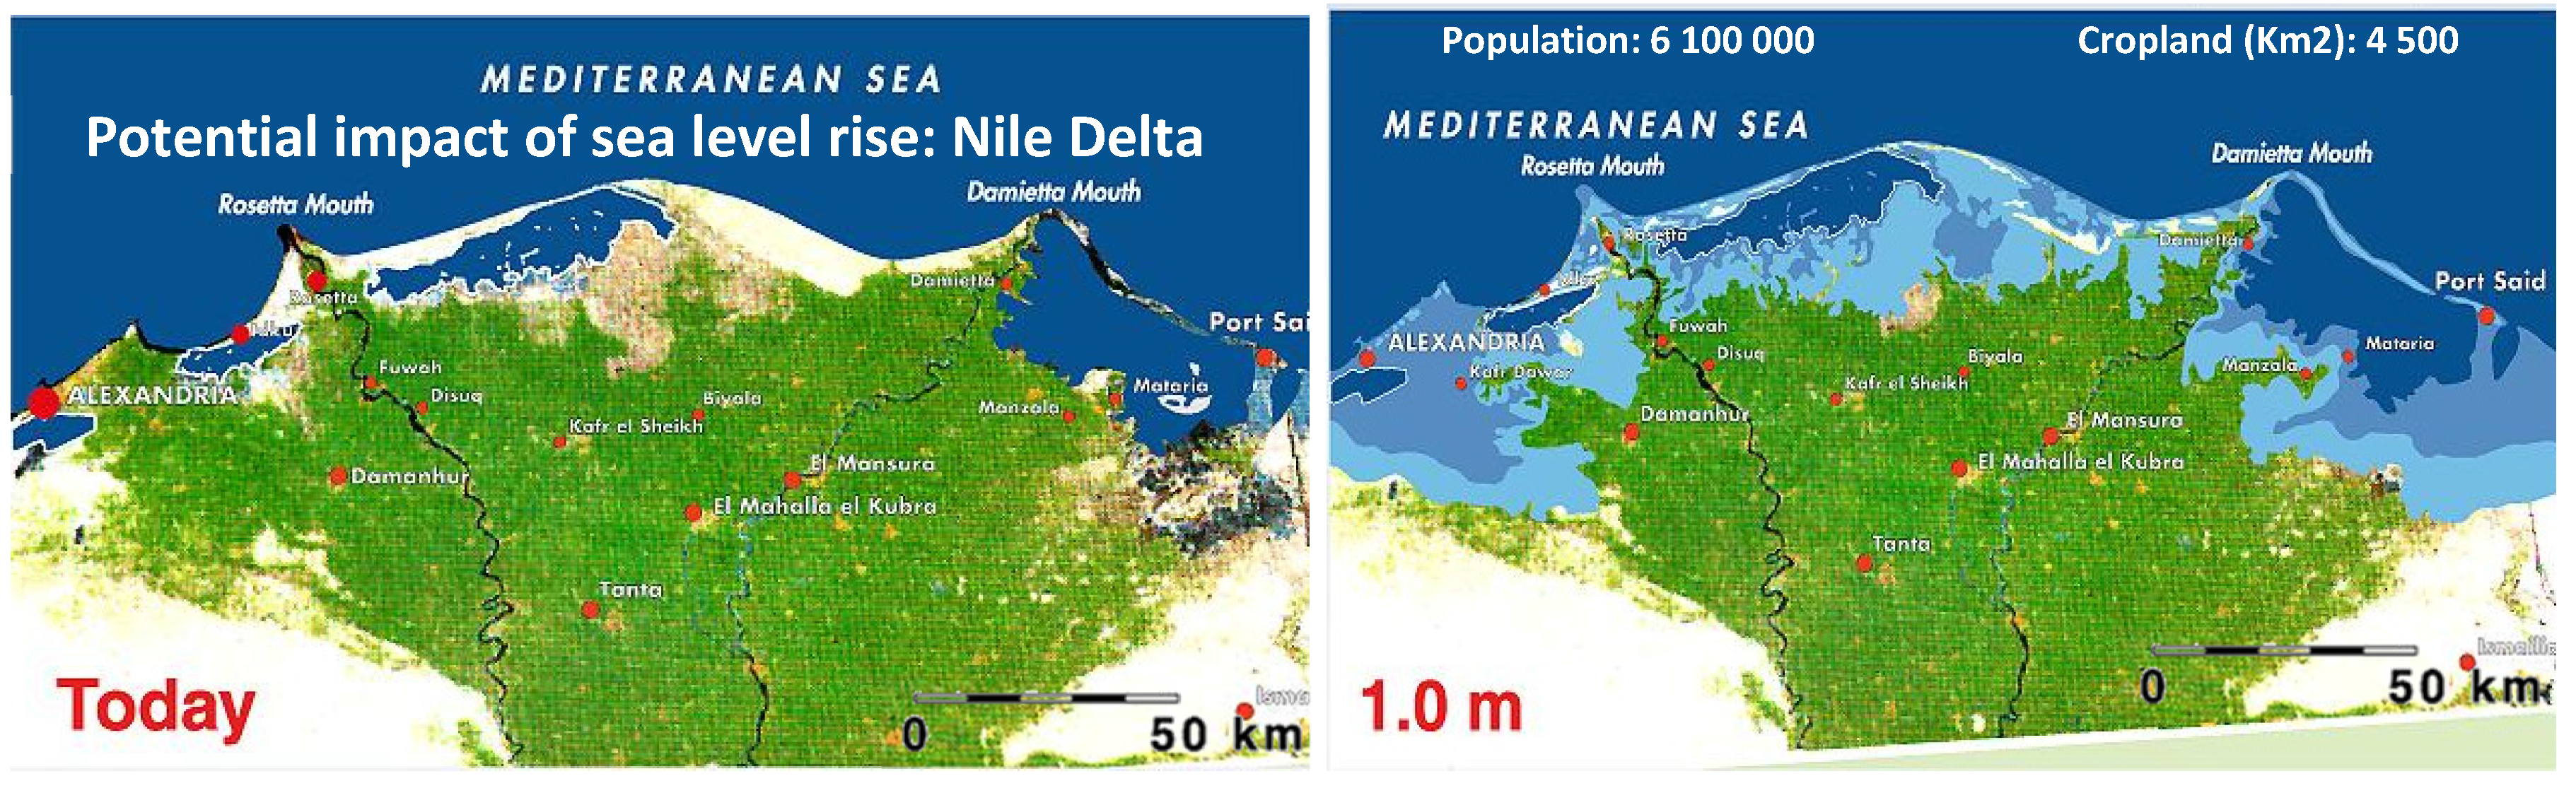 impact of sea level rise and adaption strategy The yangtze river delta characterized by a dense population and a rapidly  developing economy is highly vulnerable to sea-level rise the data from the  china.